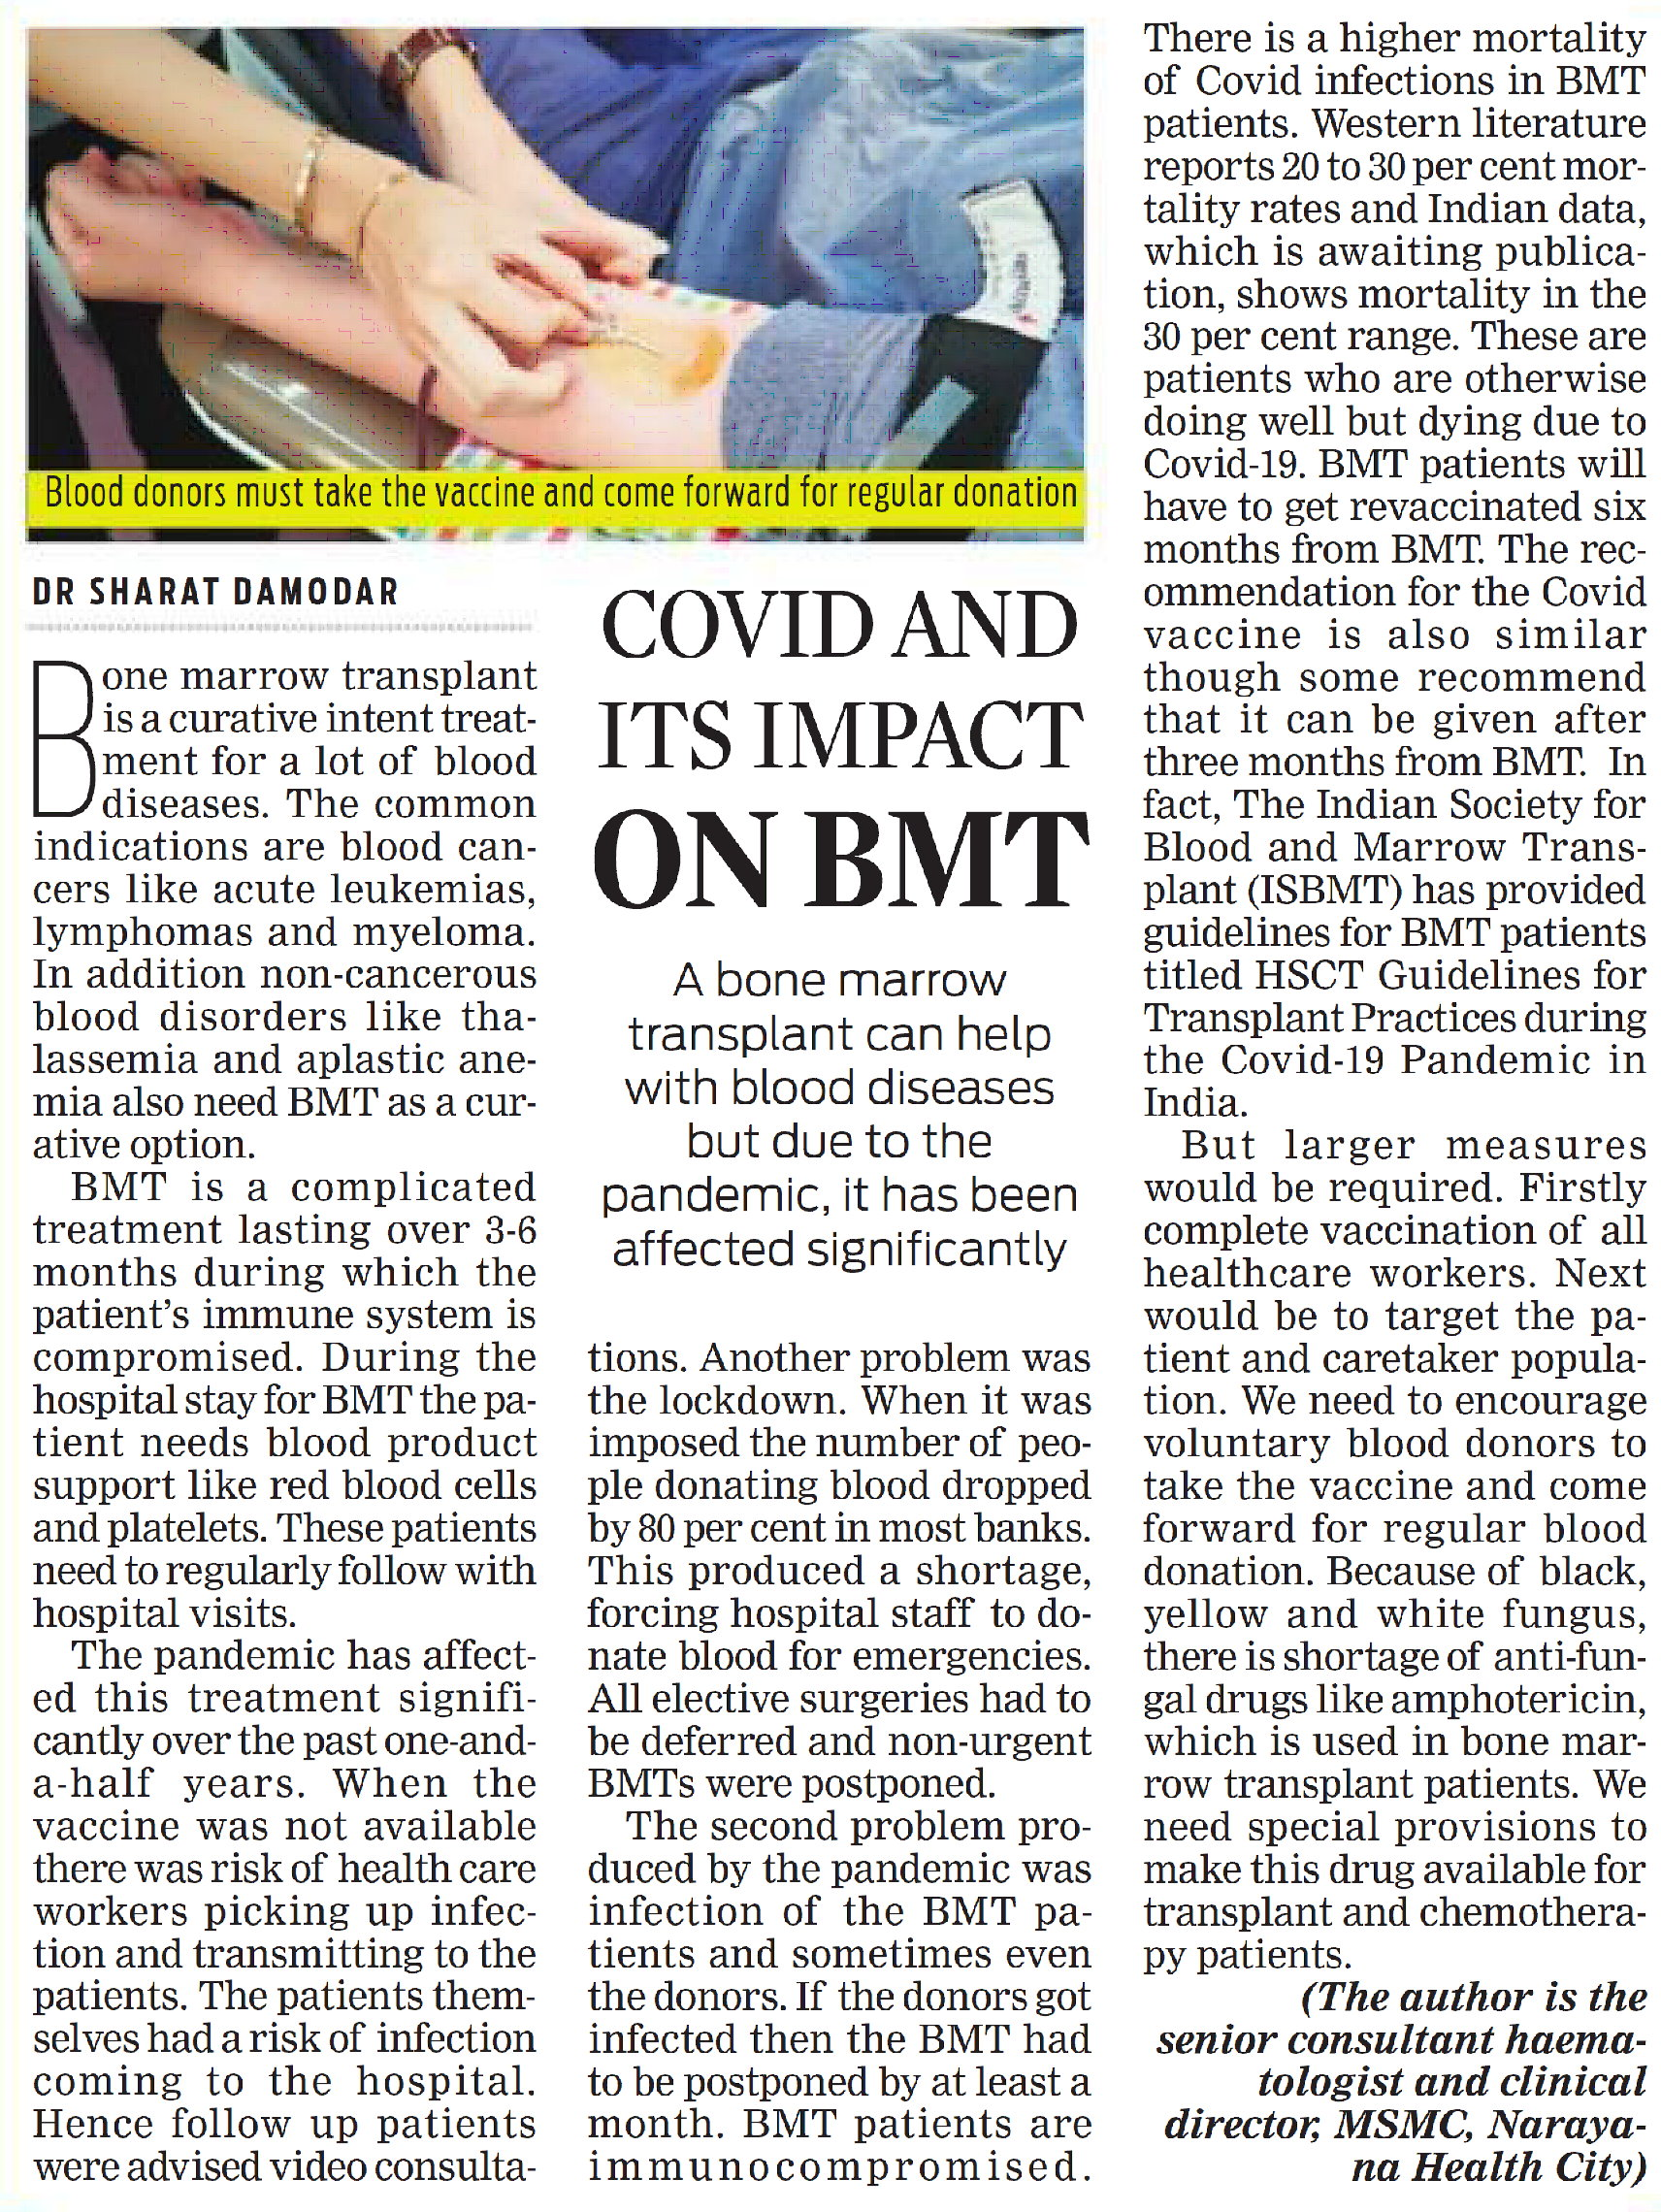 COVID and its Impact on BMT